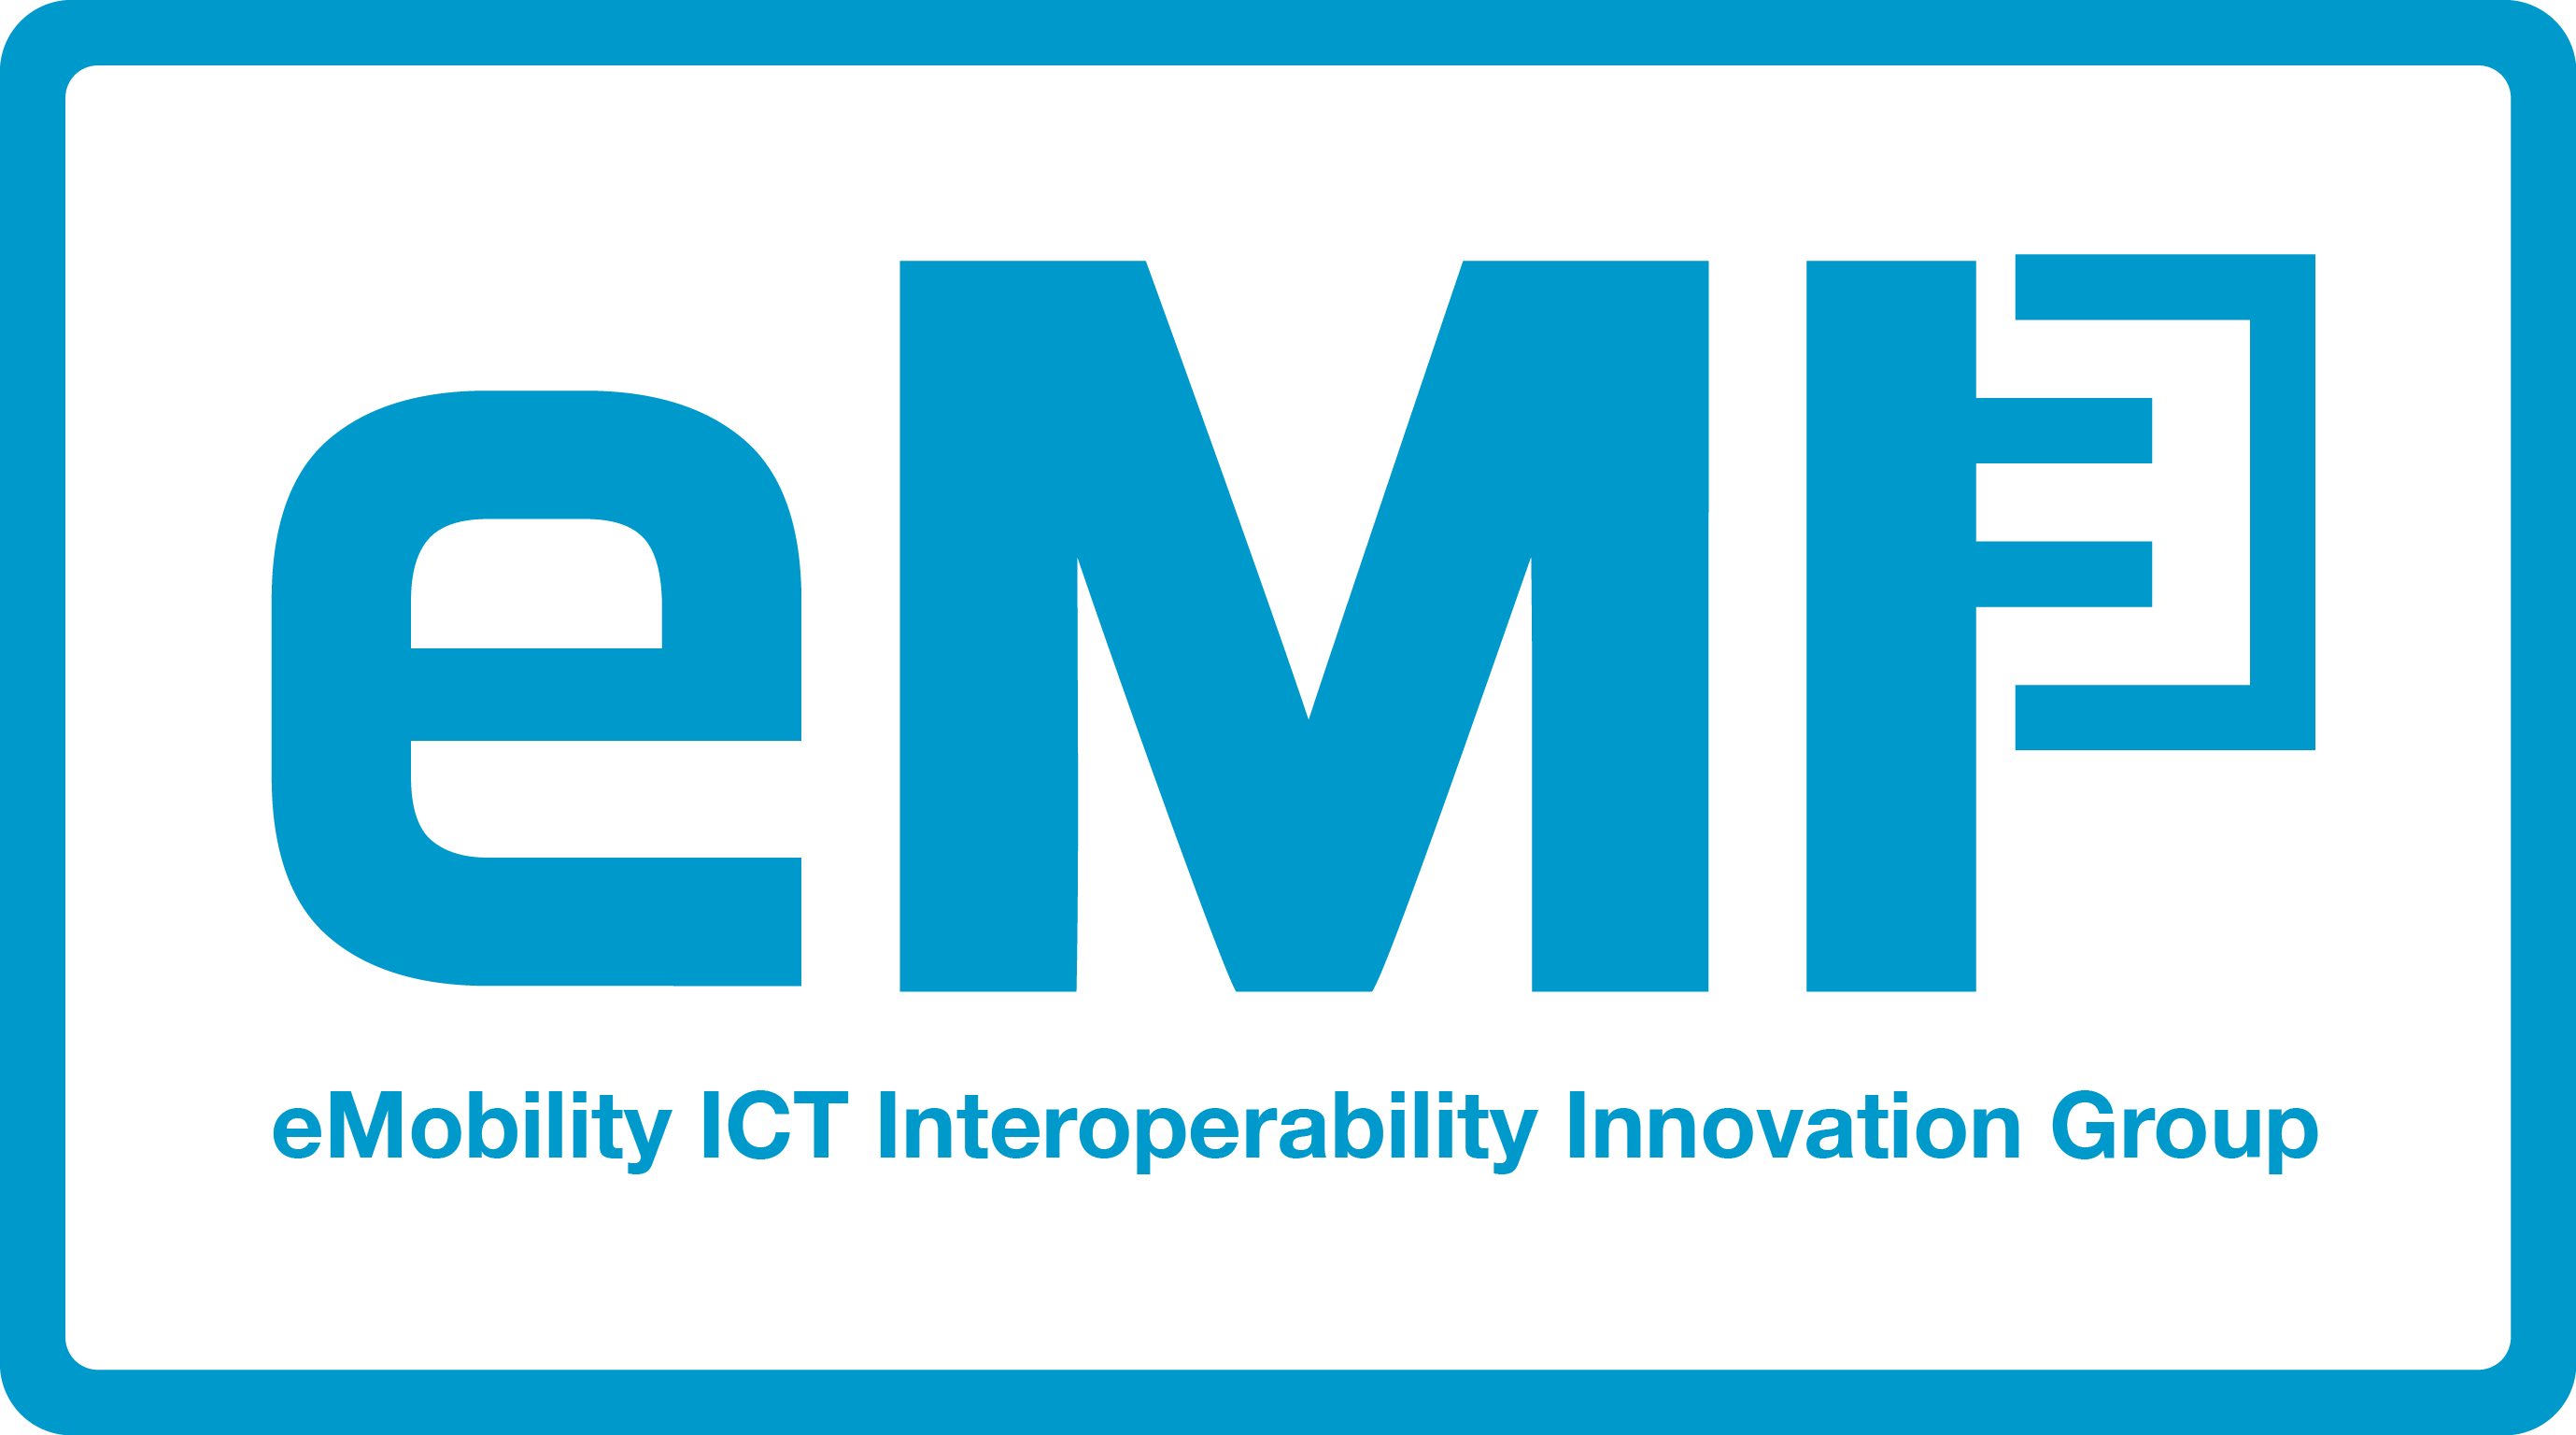 eMI³ launches its first standard specification taking a step closer to enabling interoperability across EV products